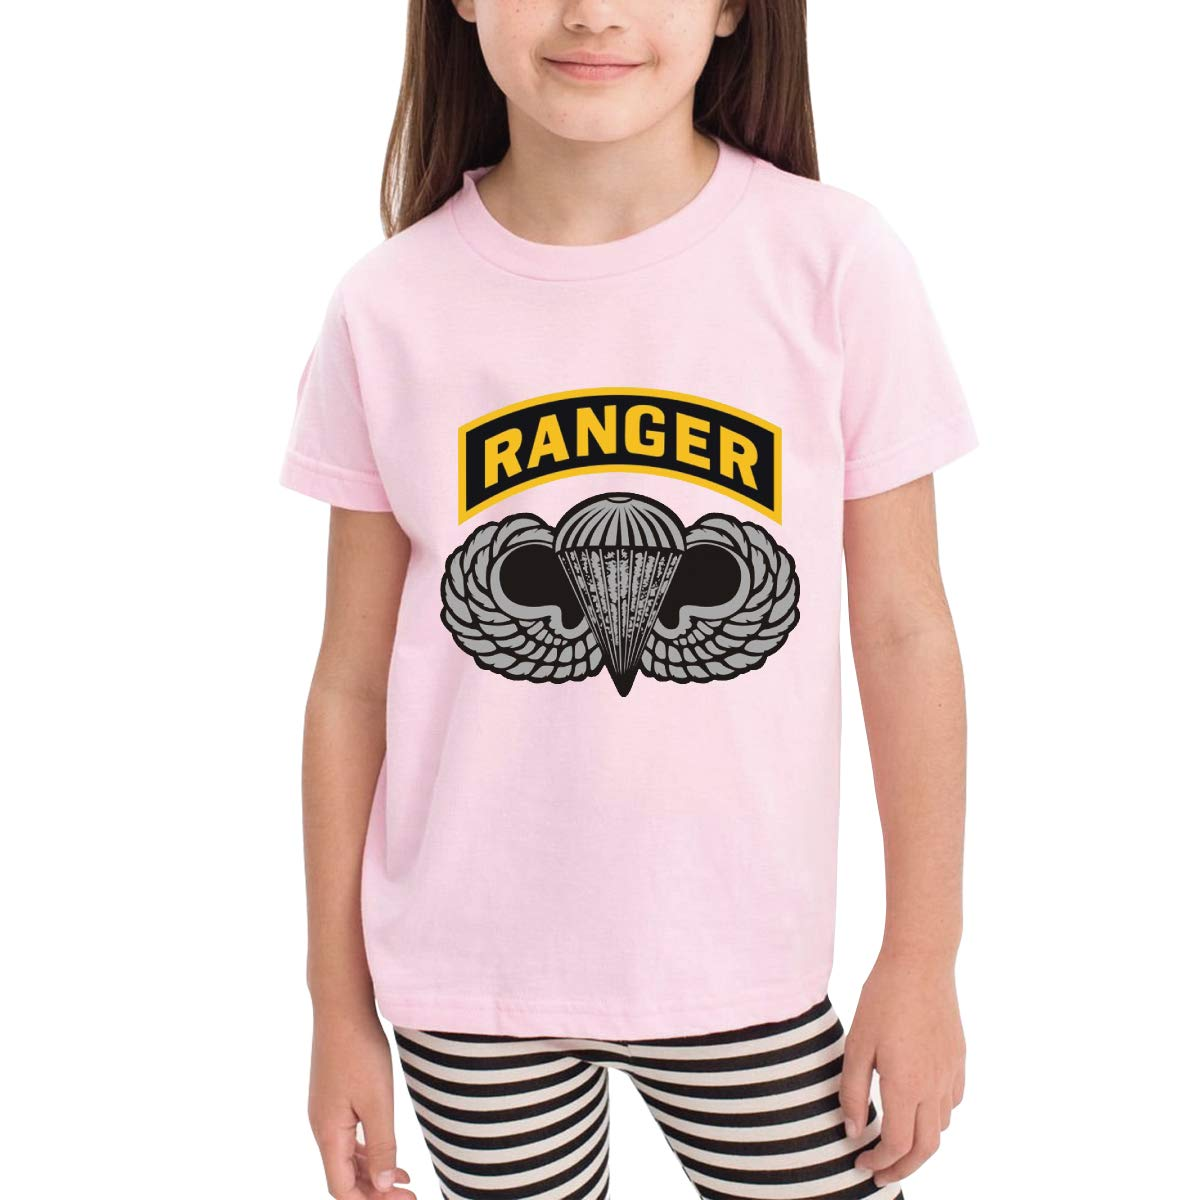 Onlybabycare Us Army Ranger Tab 100/% Cotton Toddler Baby Boys Girls Kids Short Sleeve T Shirt Top Tee Clothes 2-6 T